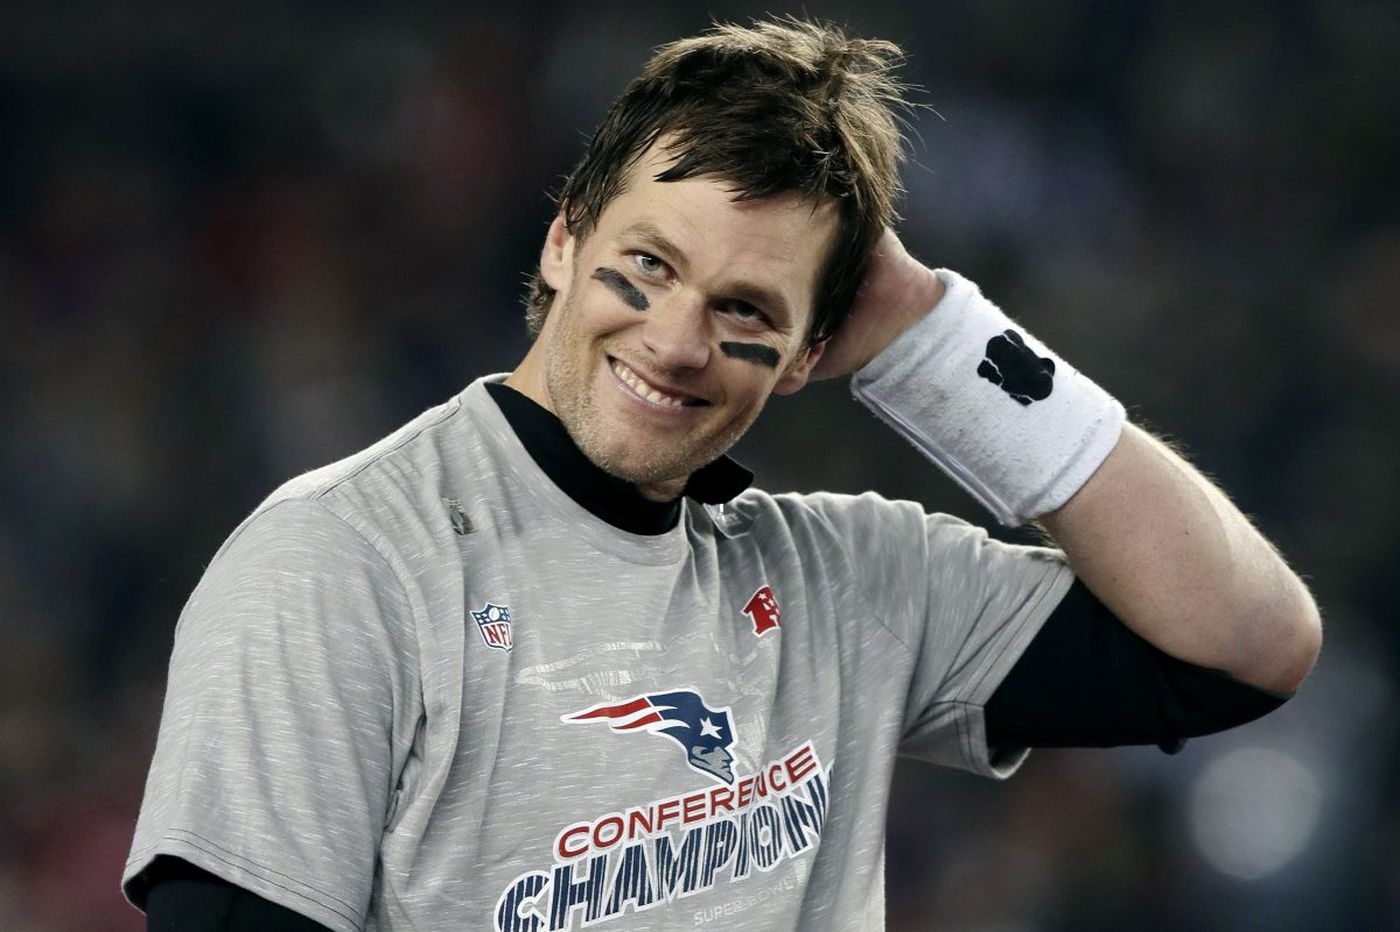 Tom Brady blows off WEEI interview after host insults Patriots star's daughter, and other news ahead of the Super Bowl